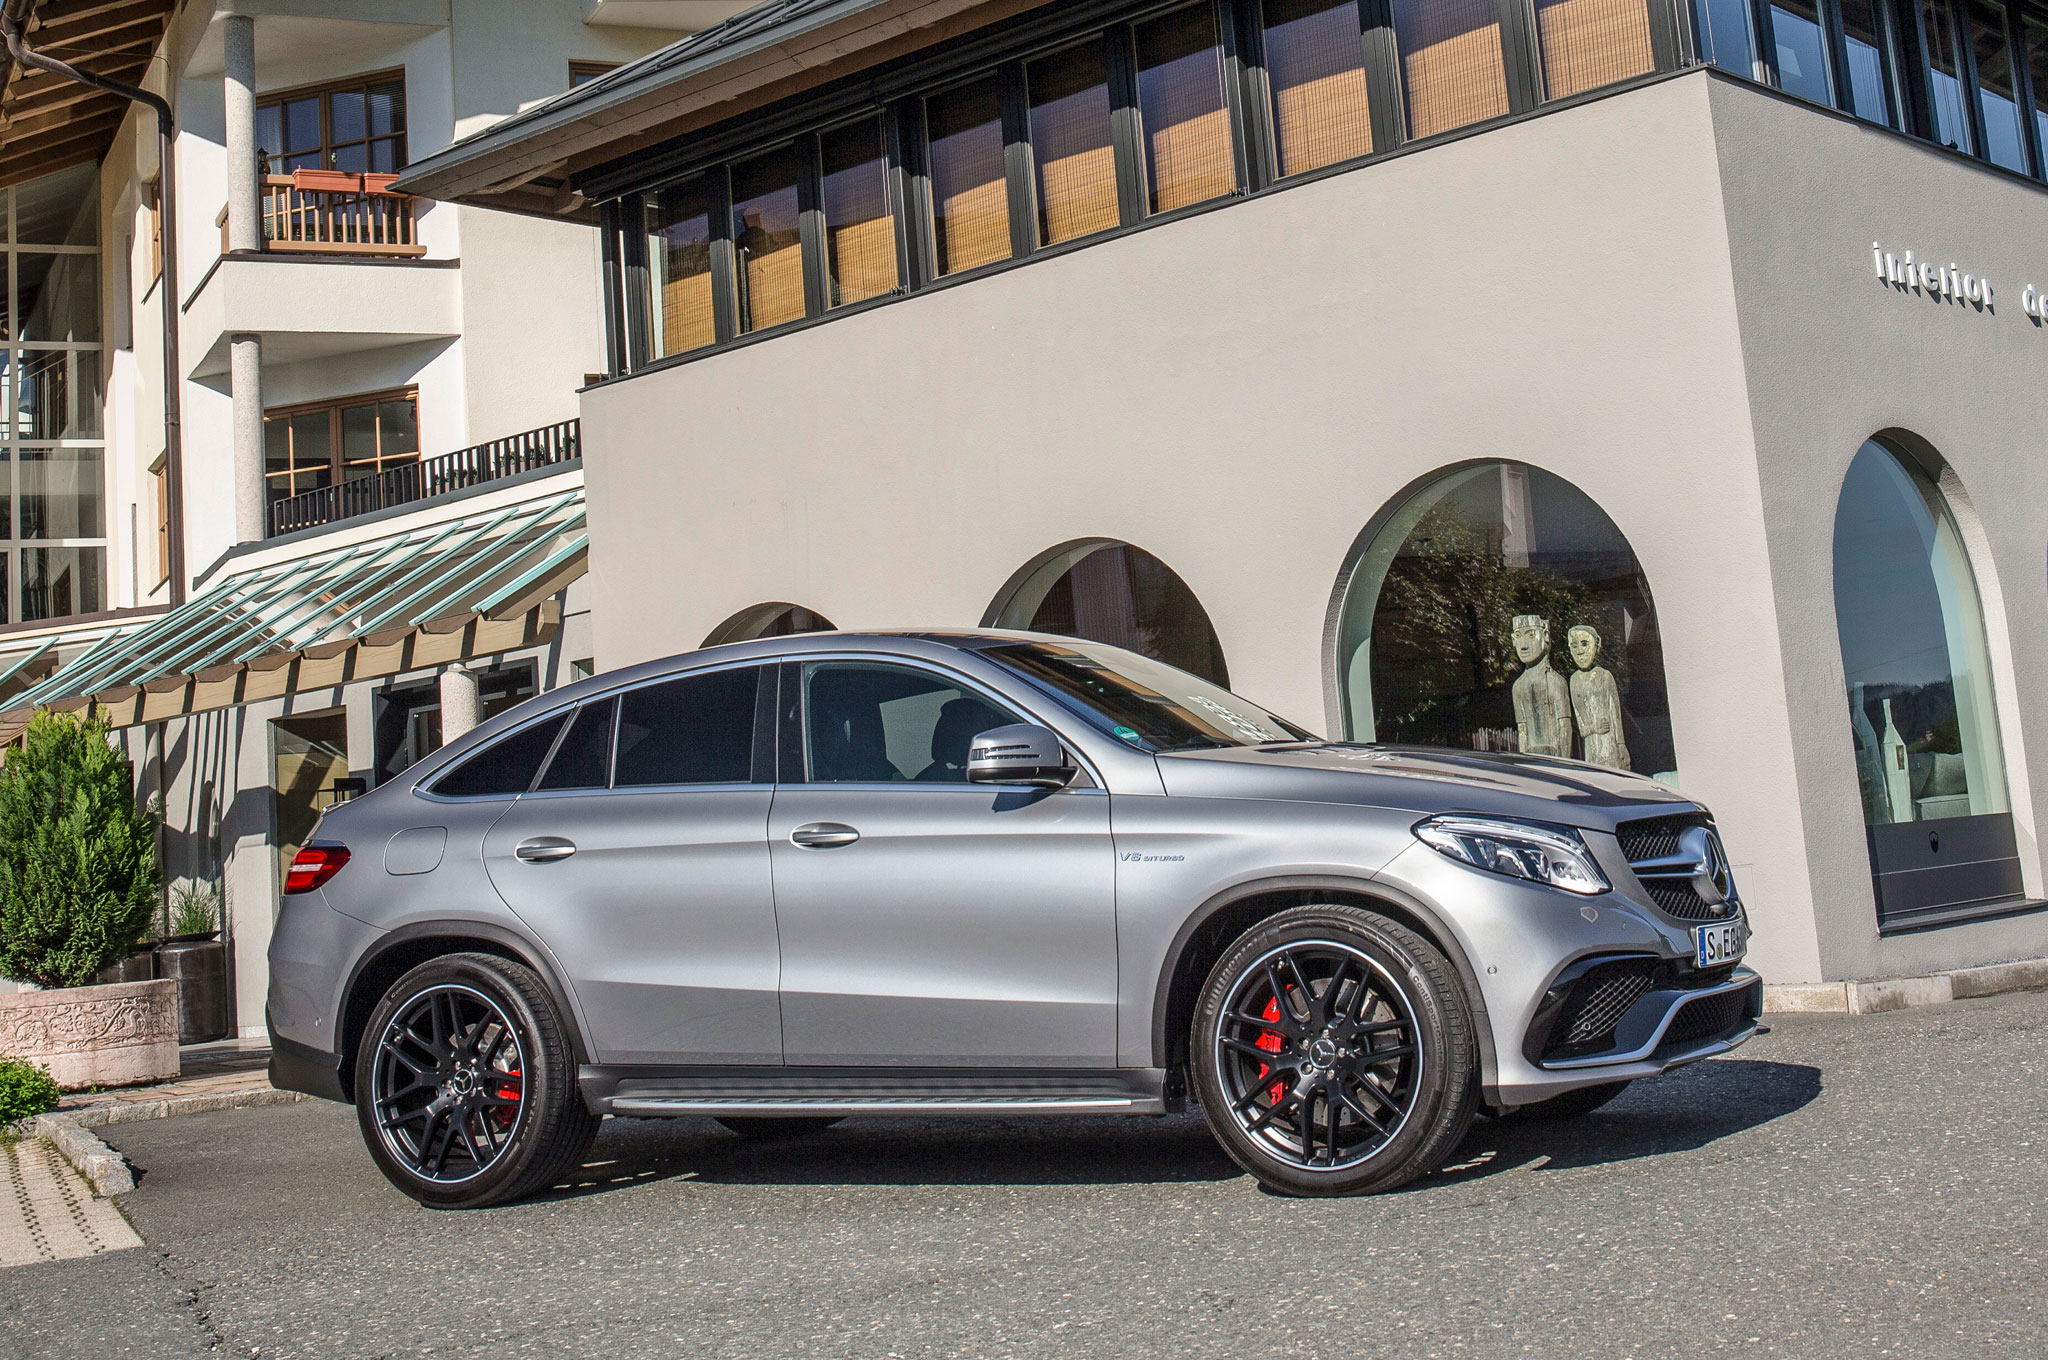 Cool Review About Gle 450 Coupe with Amusing Gallery